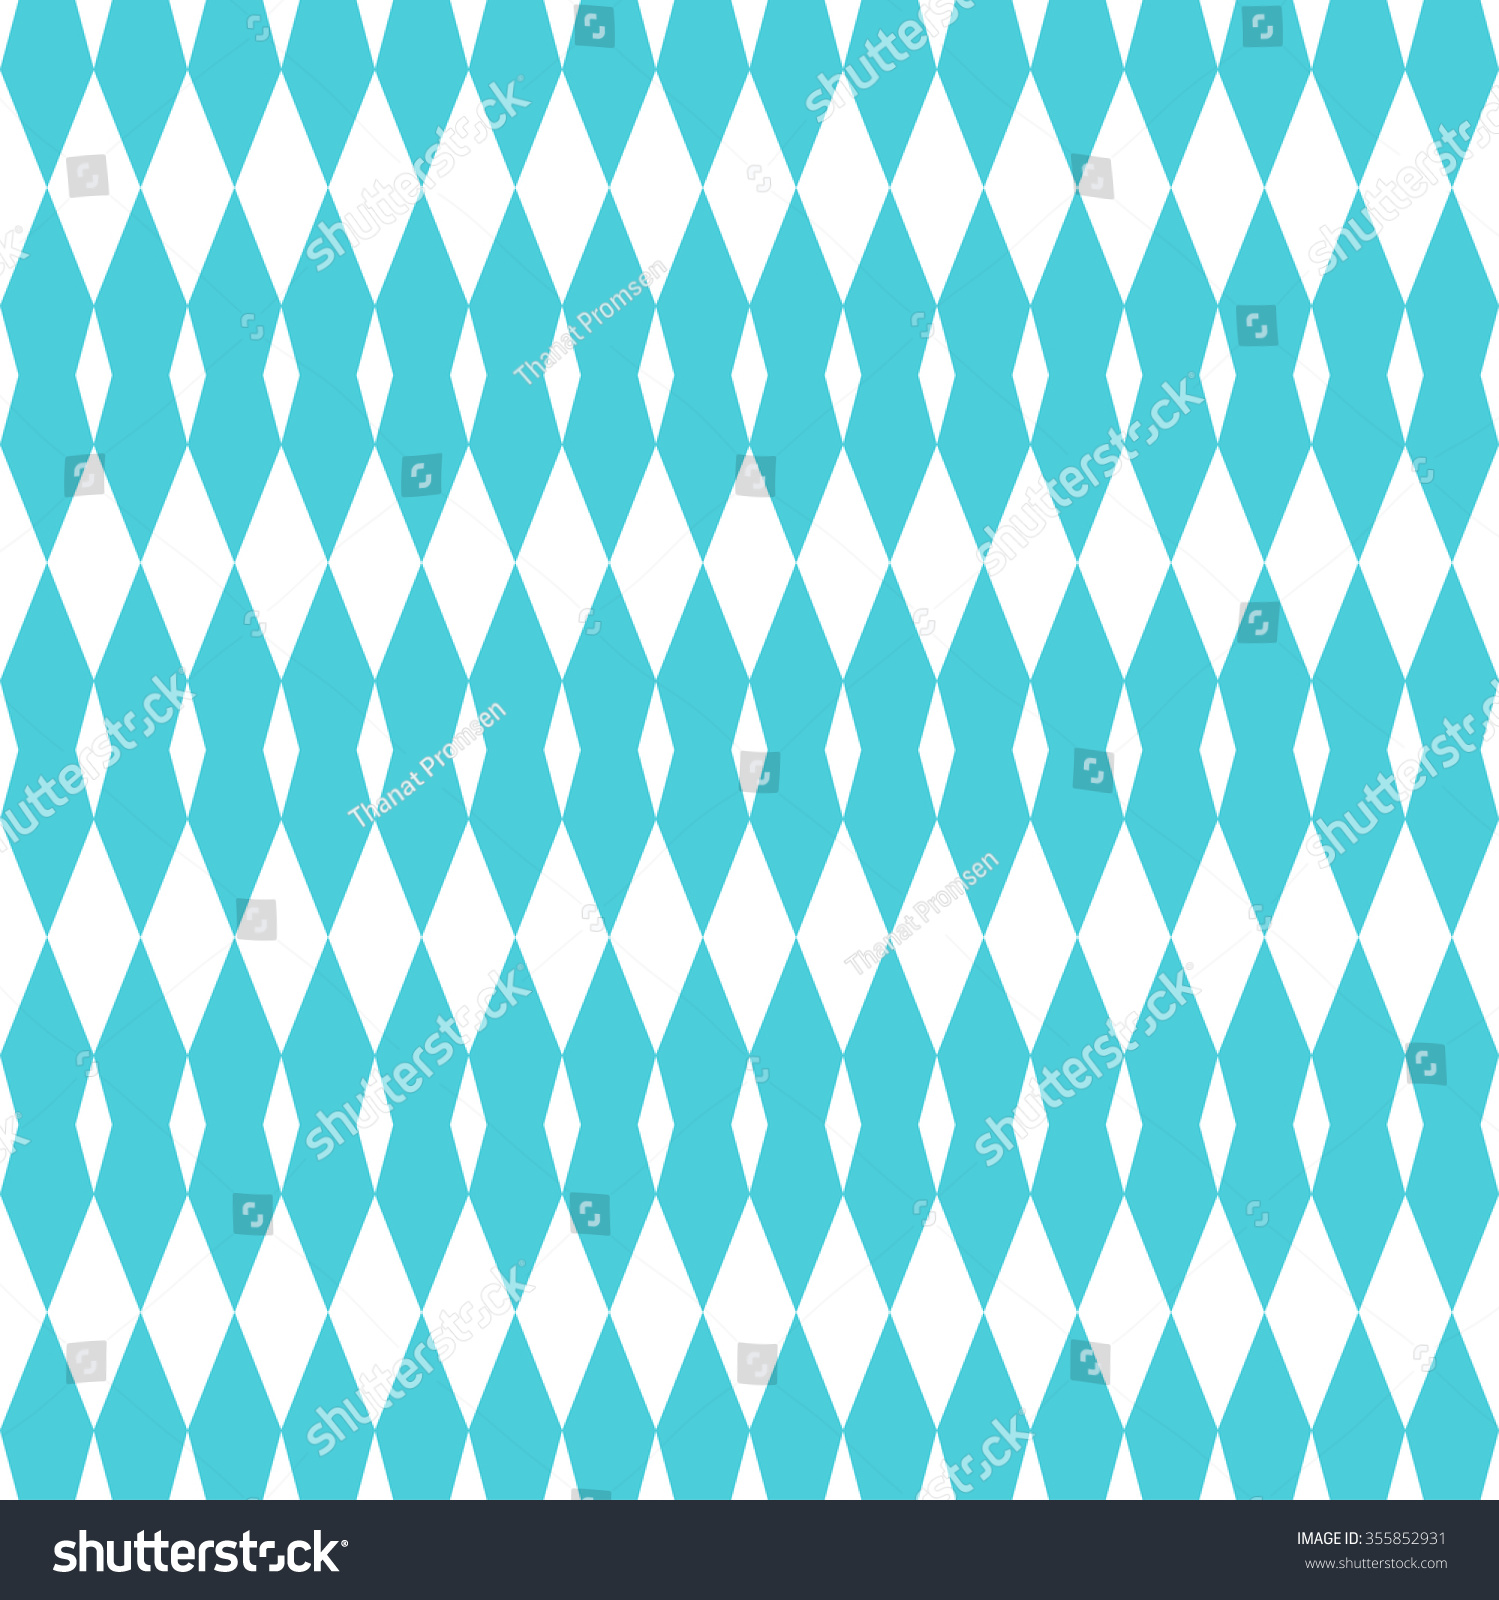 Abstract striped textured geometric seamless pattern stock for Object pool design pattern